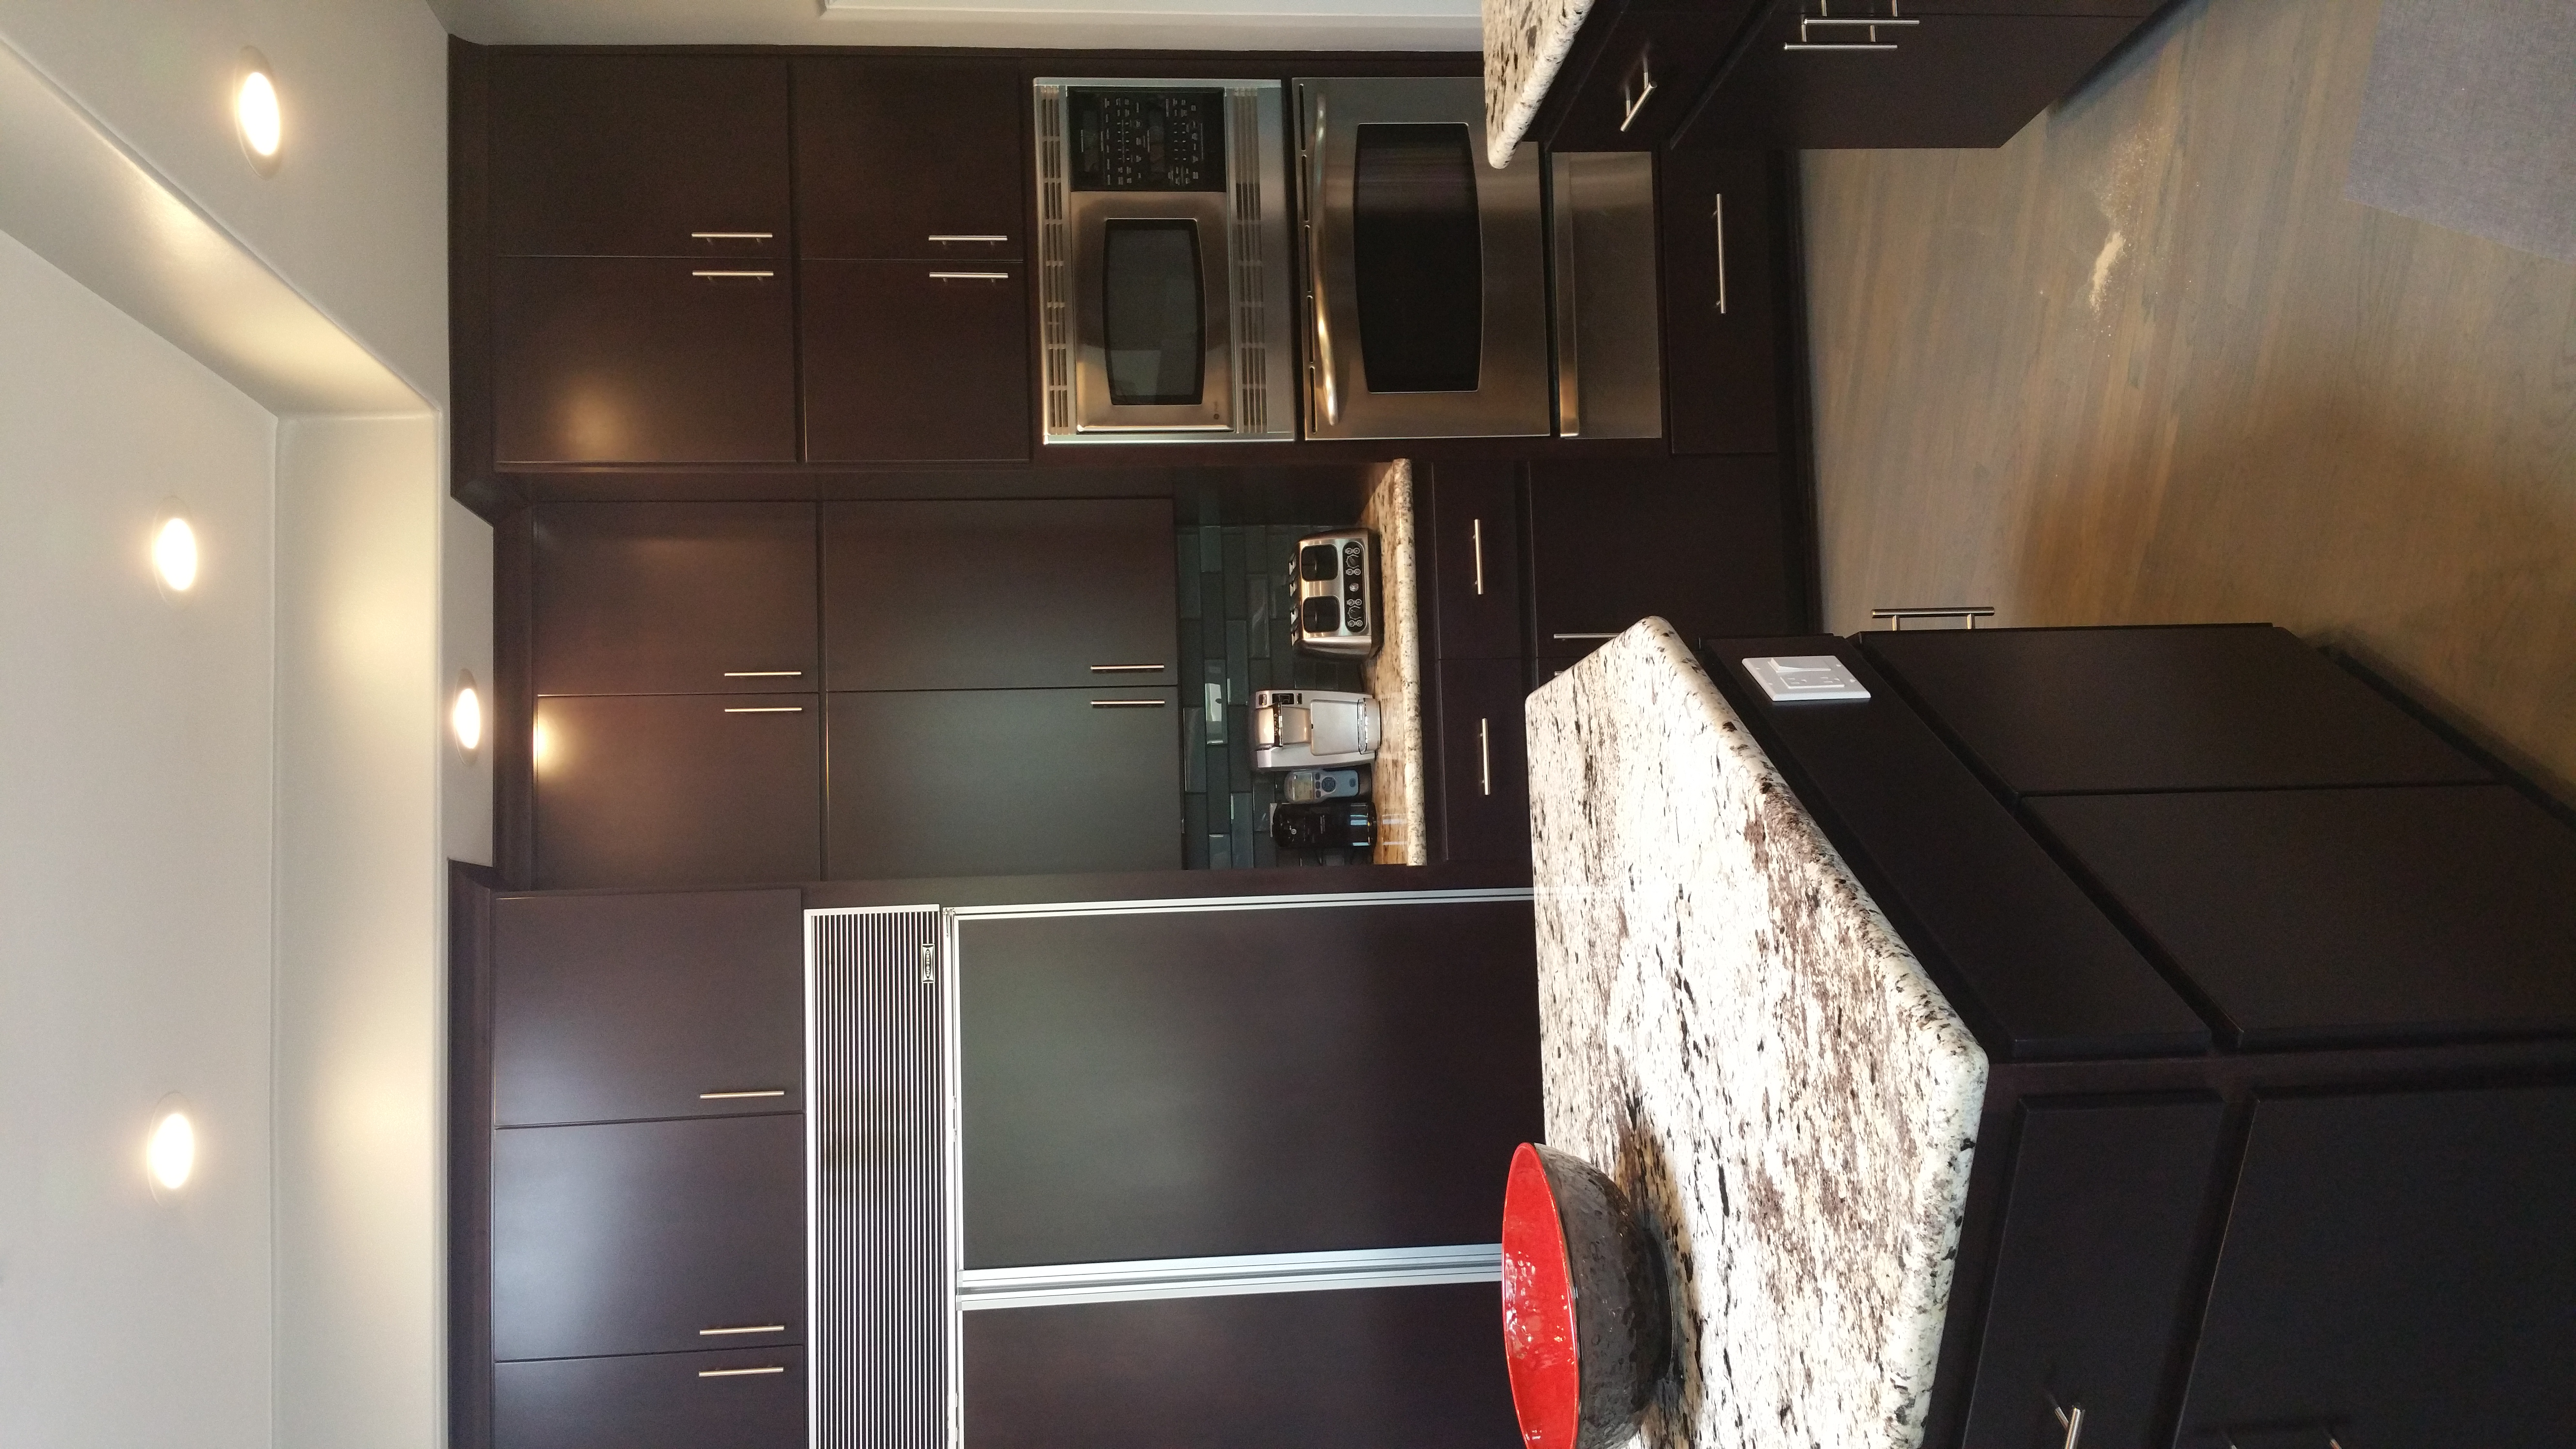 Refacing kitchen cabinets dallas tx picture ideas with remodel kitchen